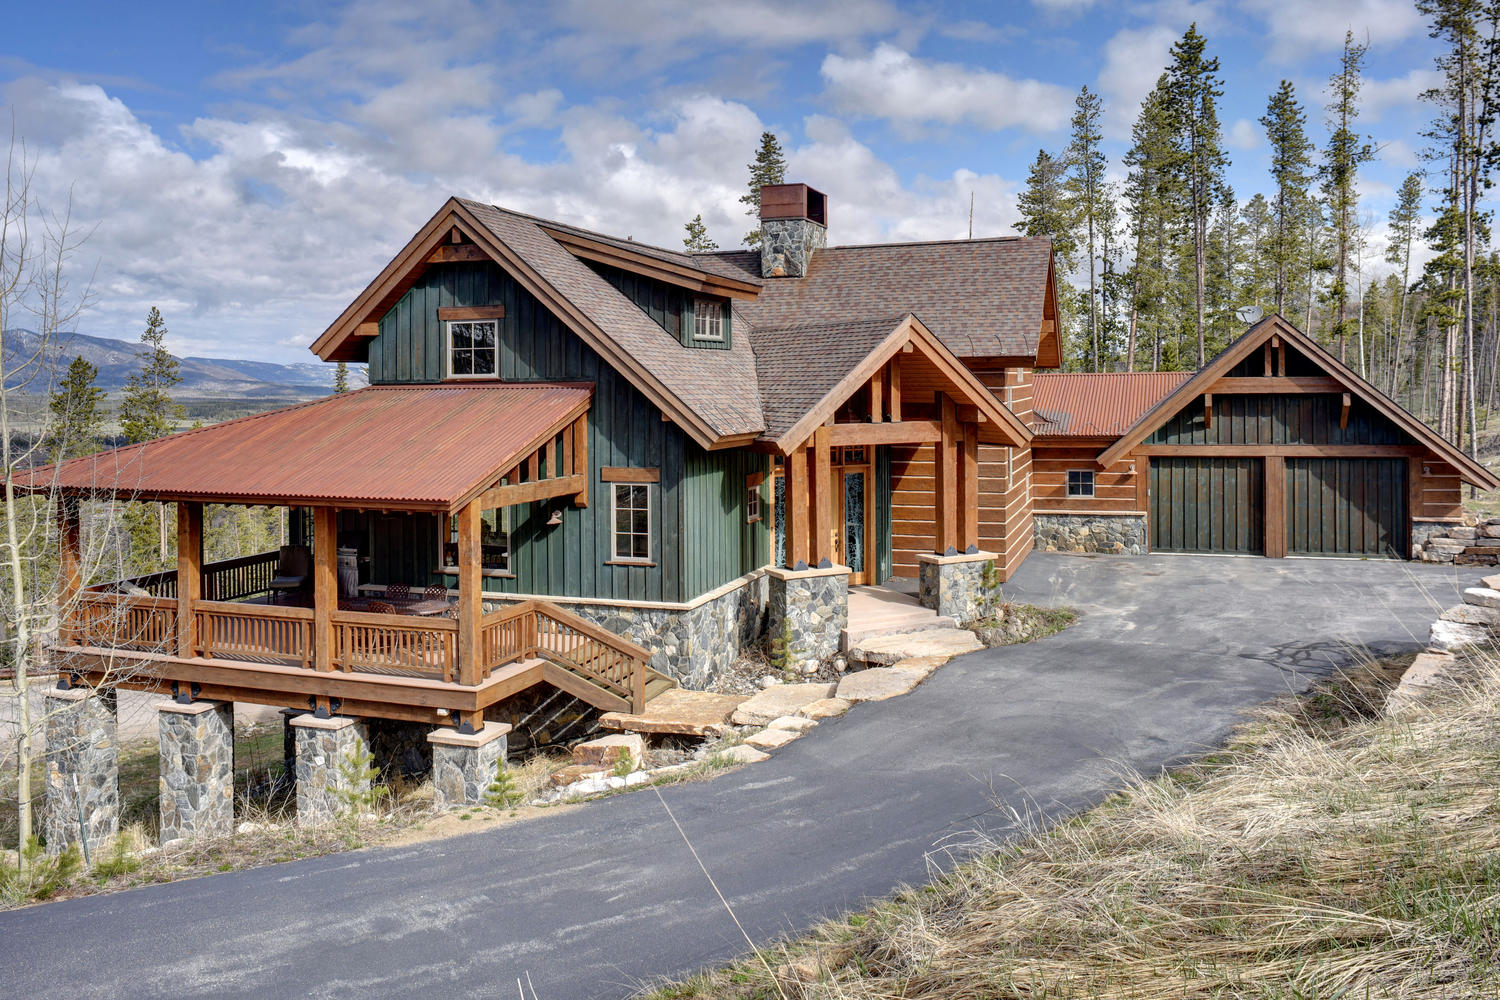 Villa per Vendita alle ore Sunning Custom Home 929 Pioneer Trail Winter Park, Colorado, 80442 Stati Uniti